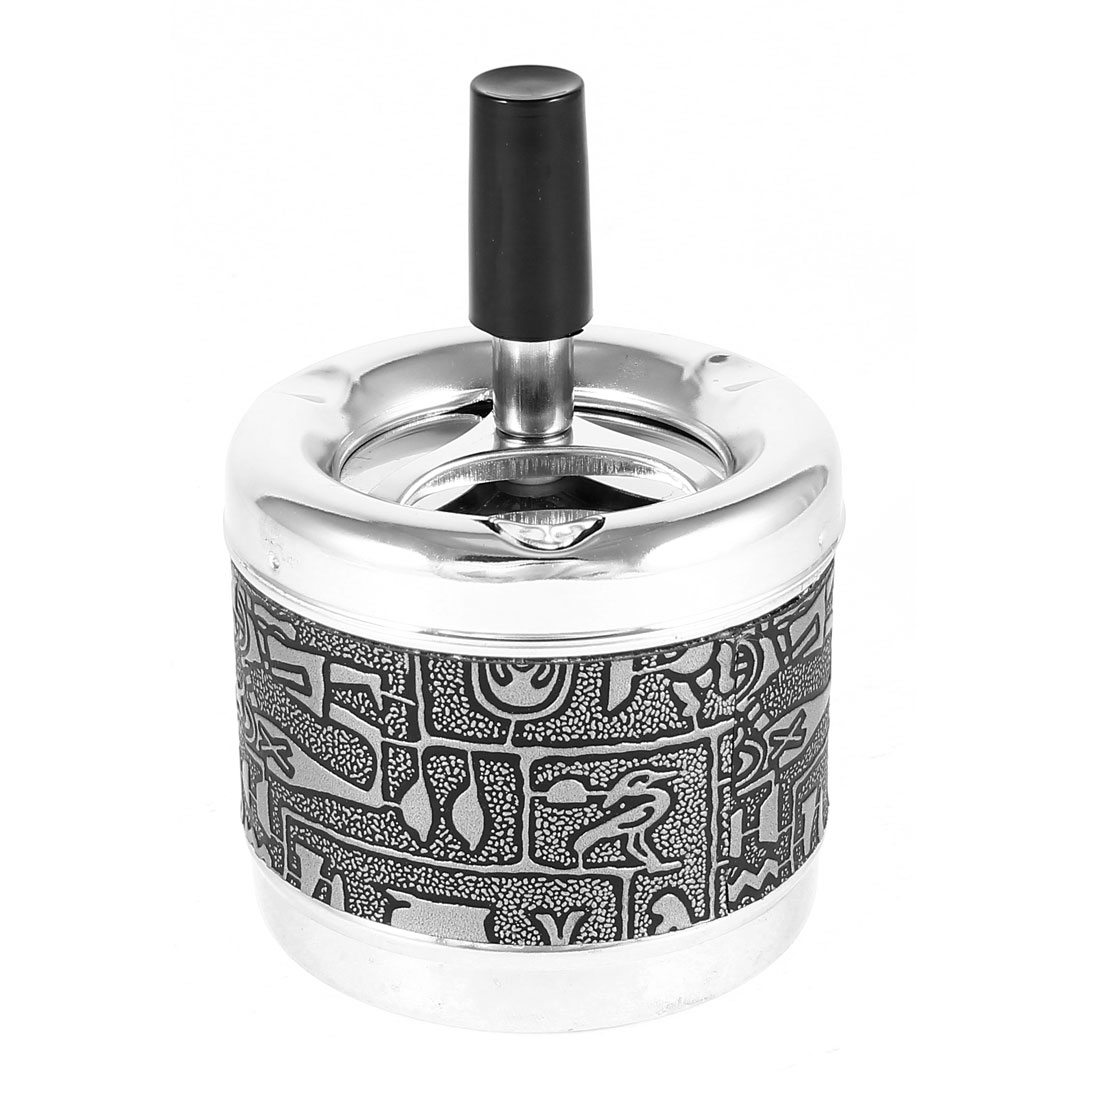 Metal Cylinder Shape Egypt Design Cigarette Ashtray Ash Tray Gray